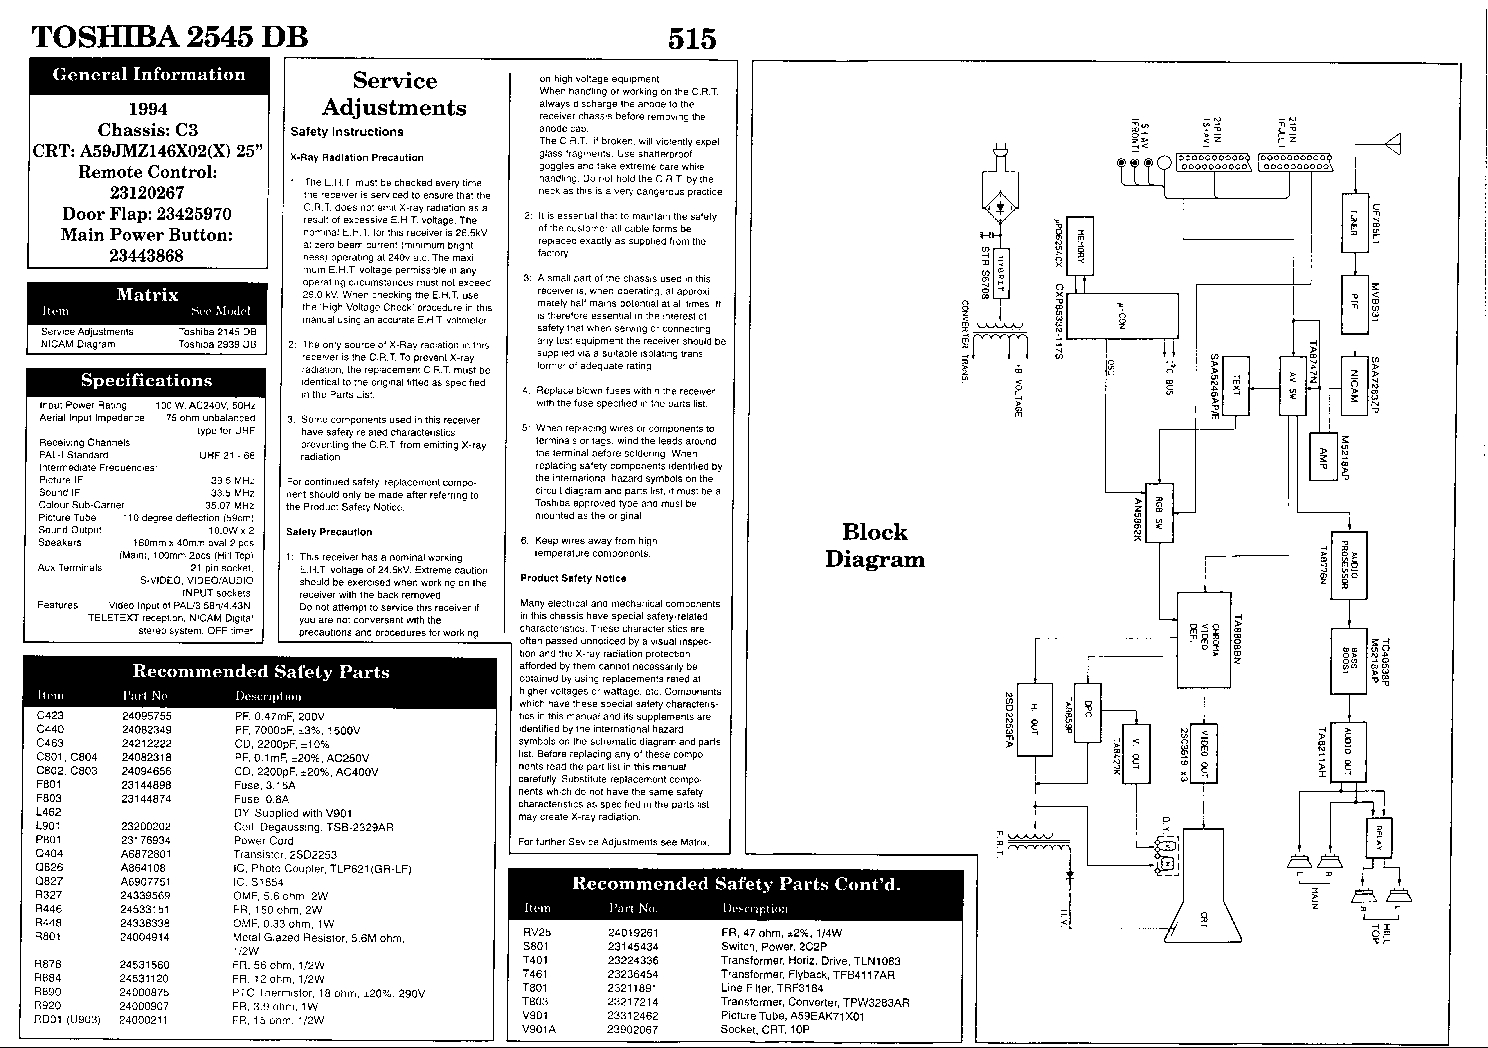 TOSHIBA 2545DB-CHASSIS-C3 Service Manual download